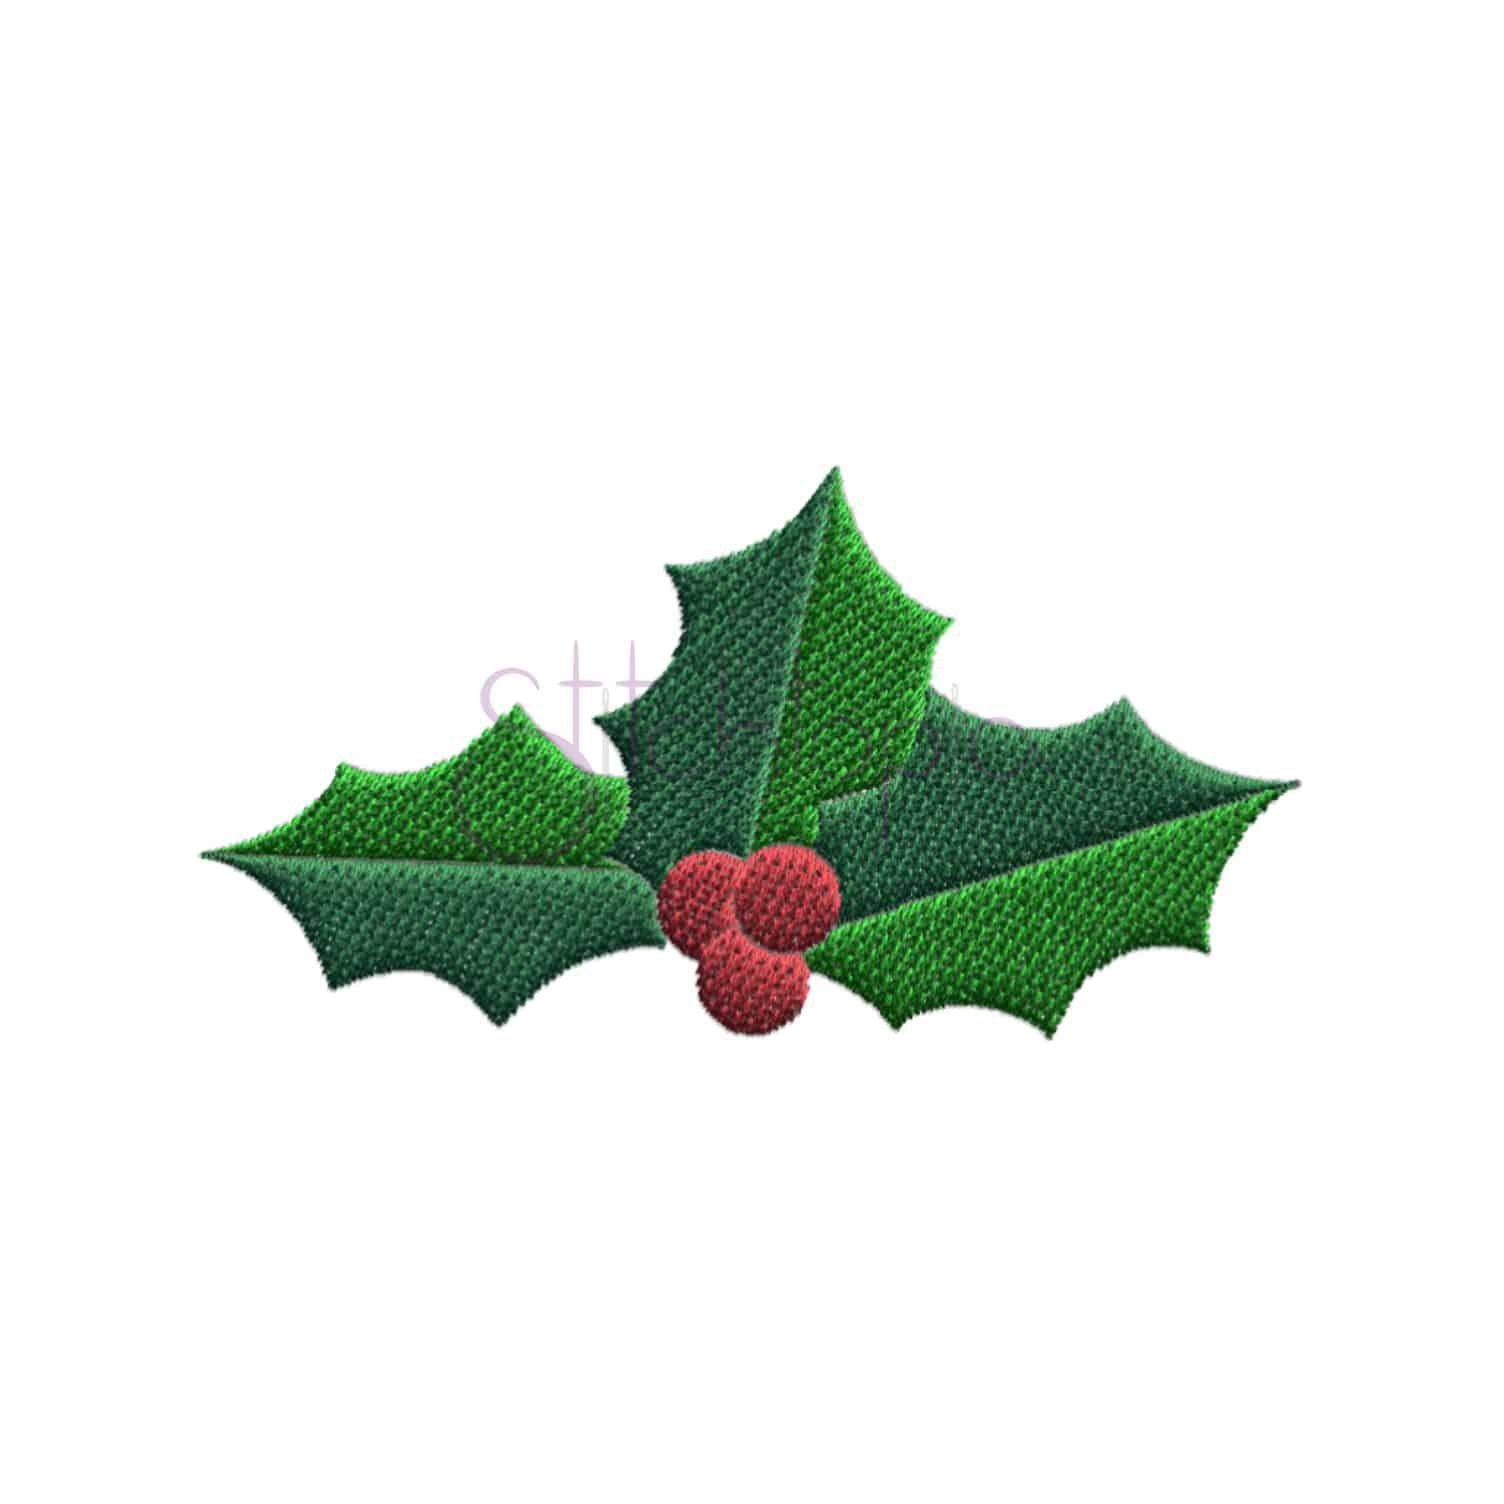 Christmas Holly Filled Embroidery Design | Stitchtopia